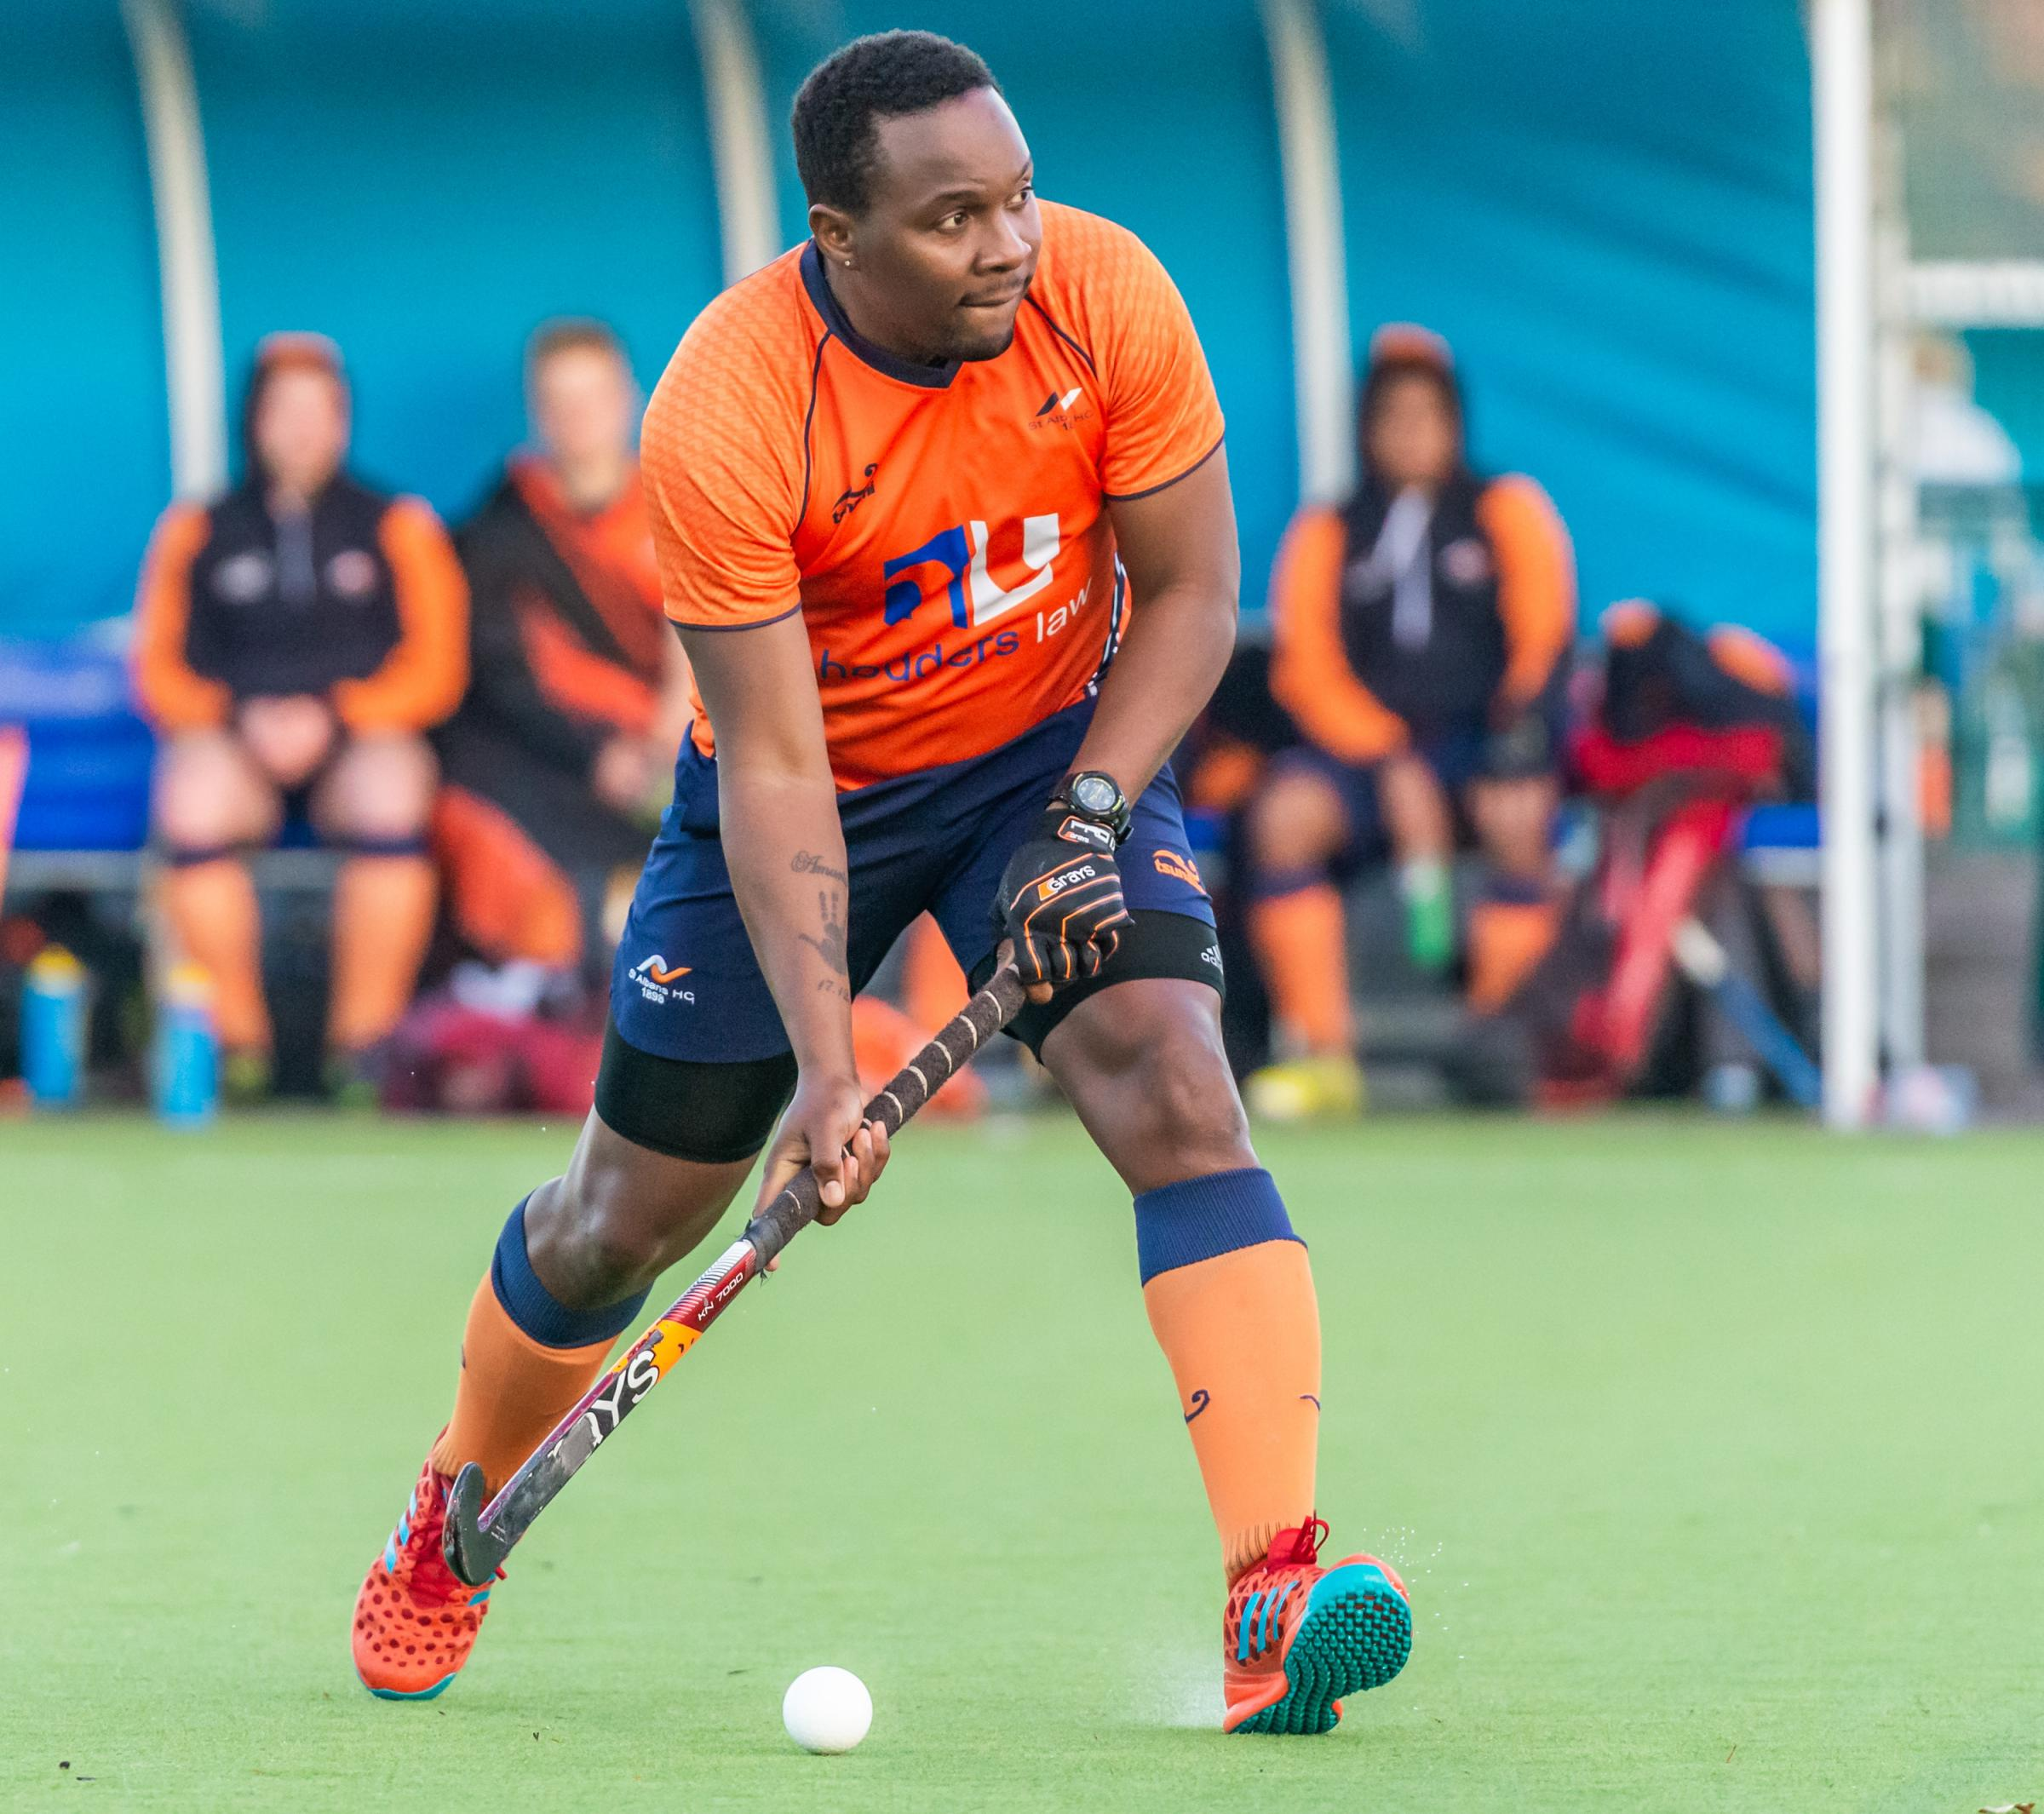 Dillet Gilkes was on target for St Albans. Picture: Chris Hobson Photography